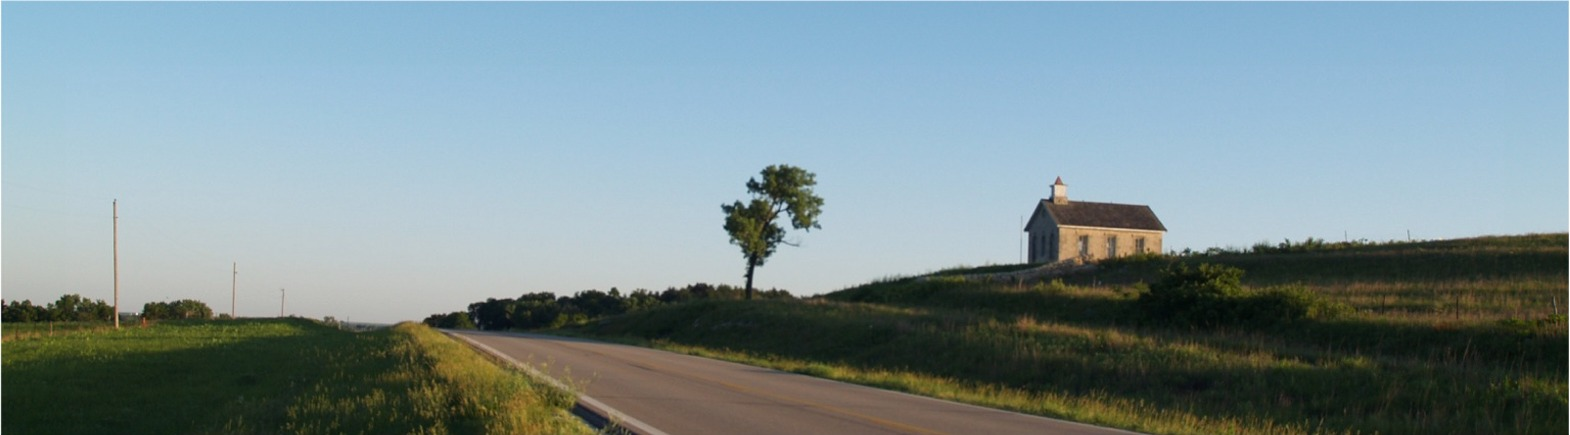 Jay Price homepage header - a solidary home along a highway under a clear blue sky.